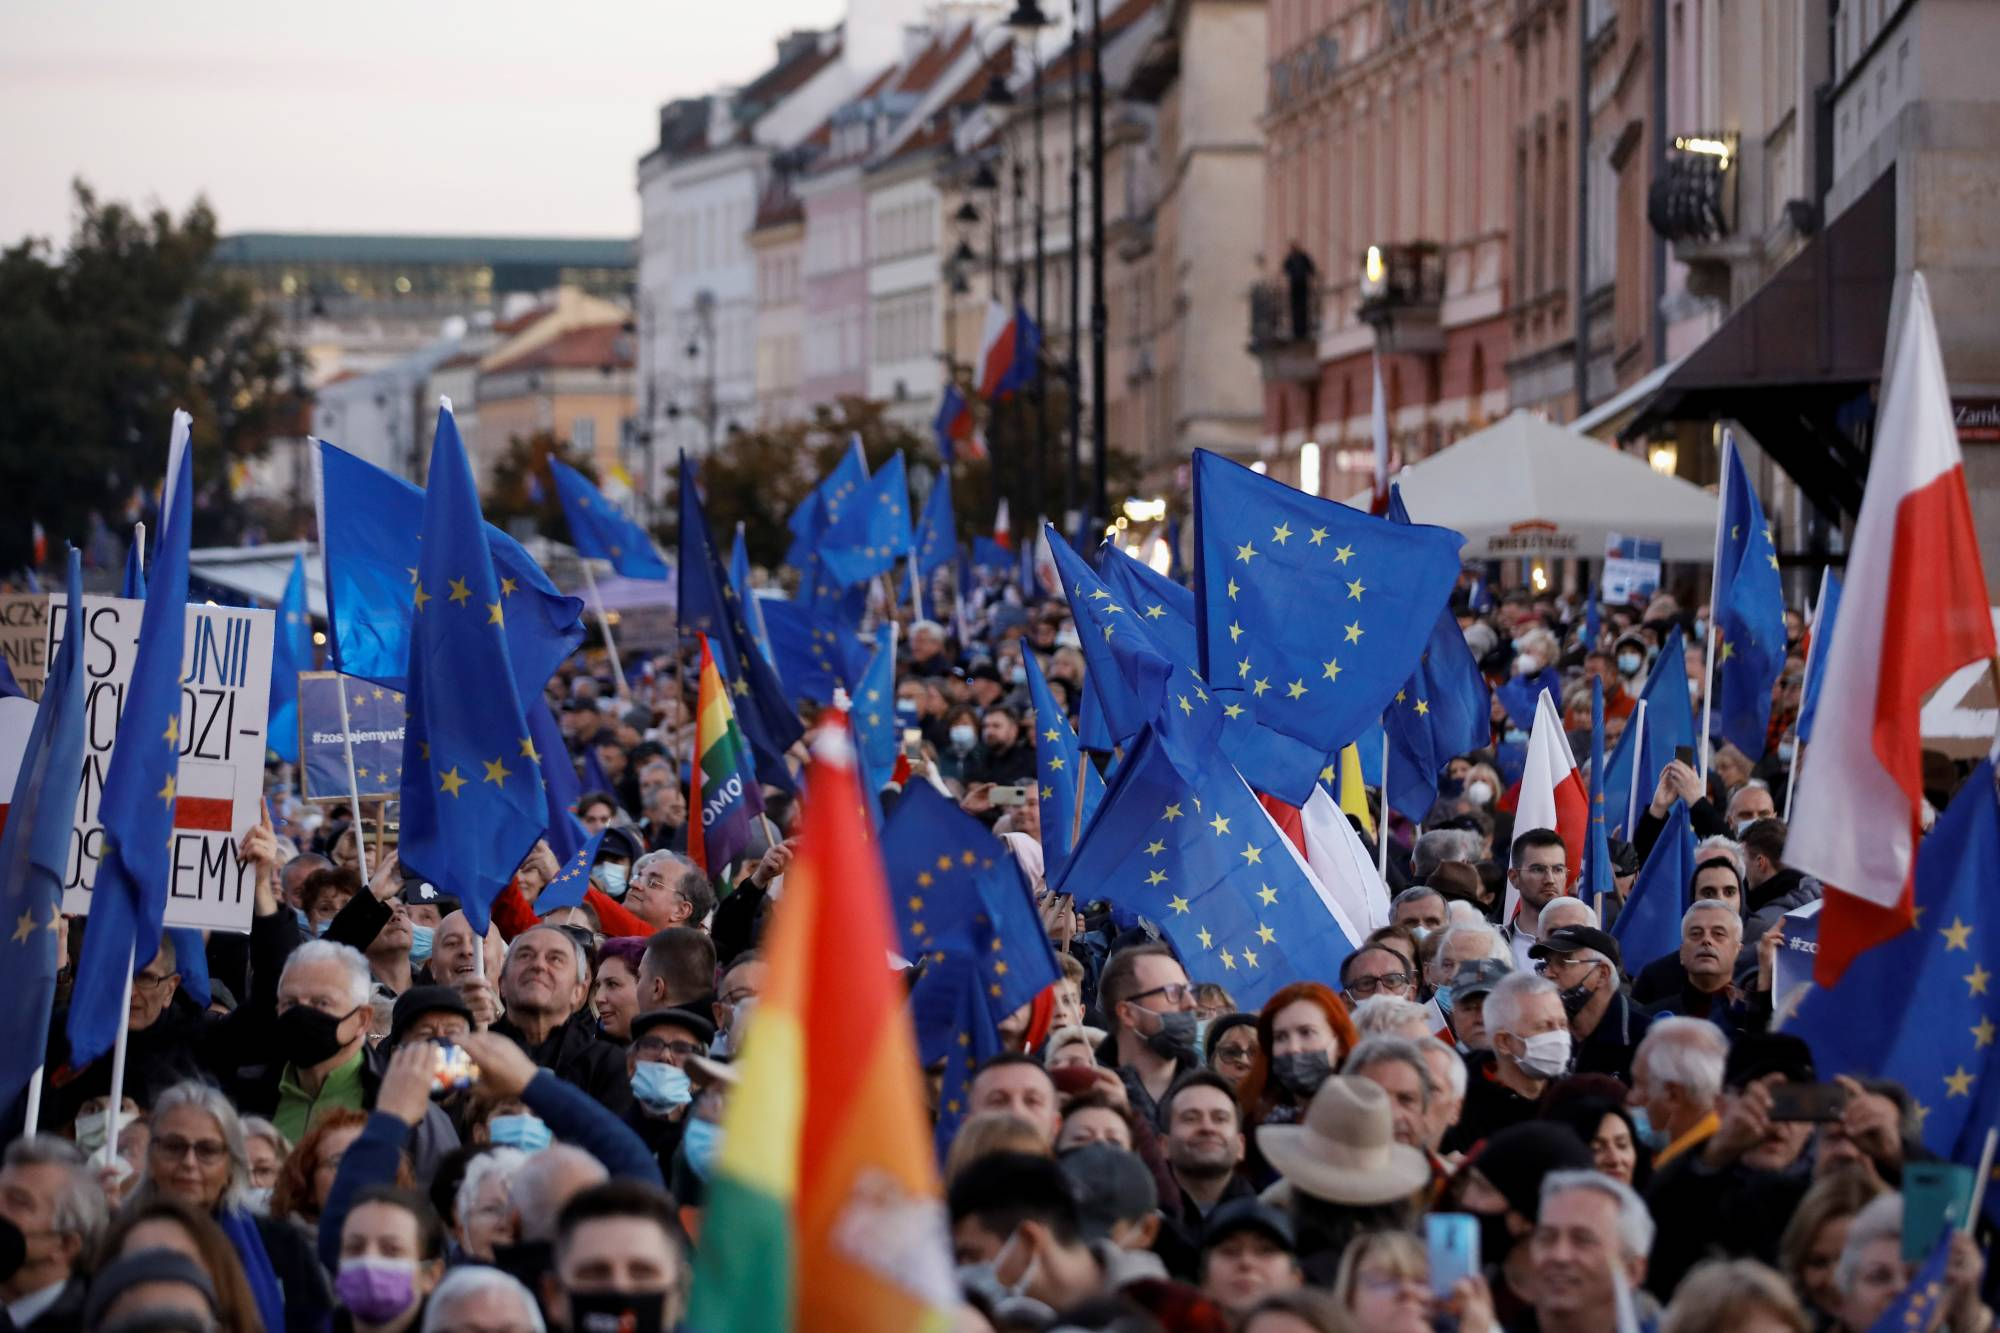 People take part in a rally in Warsaw on Sunday in support of Poland's membership of the European Union.   REUTERS